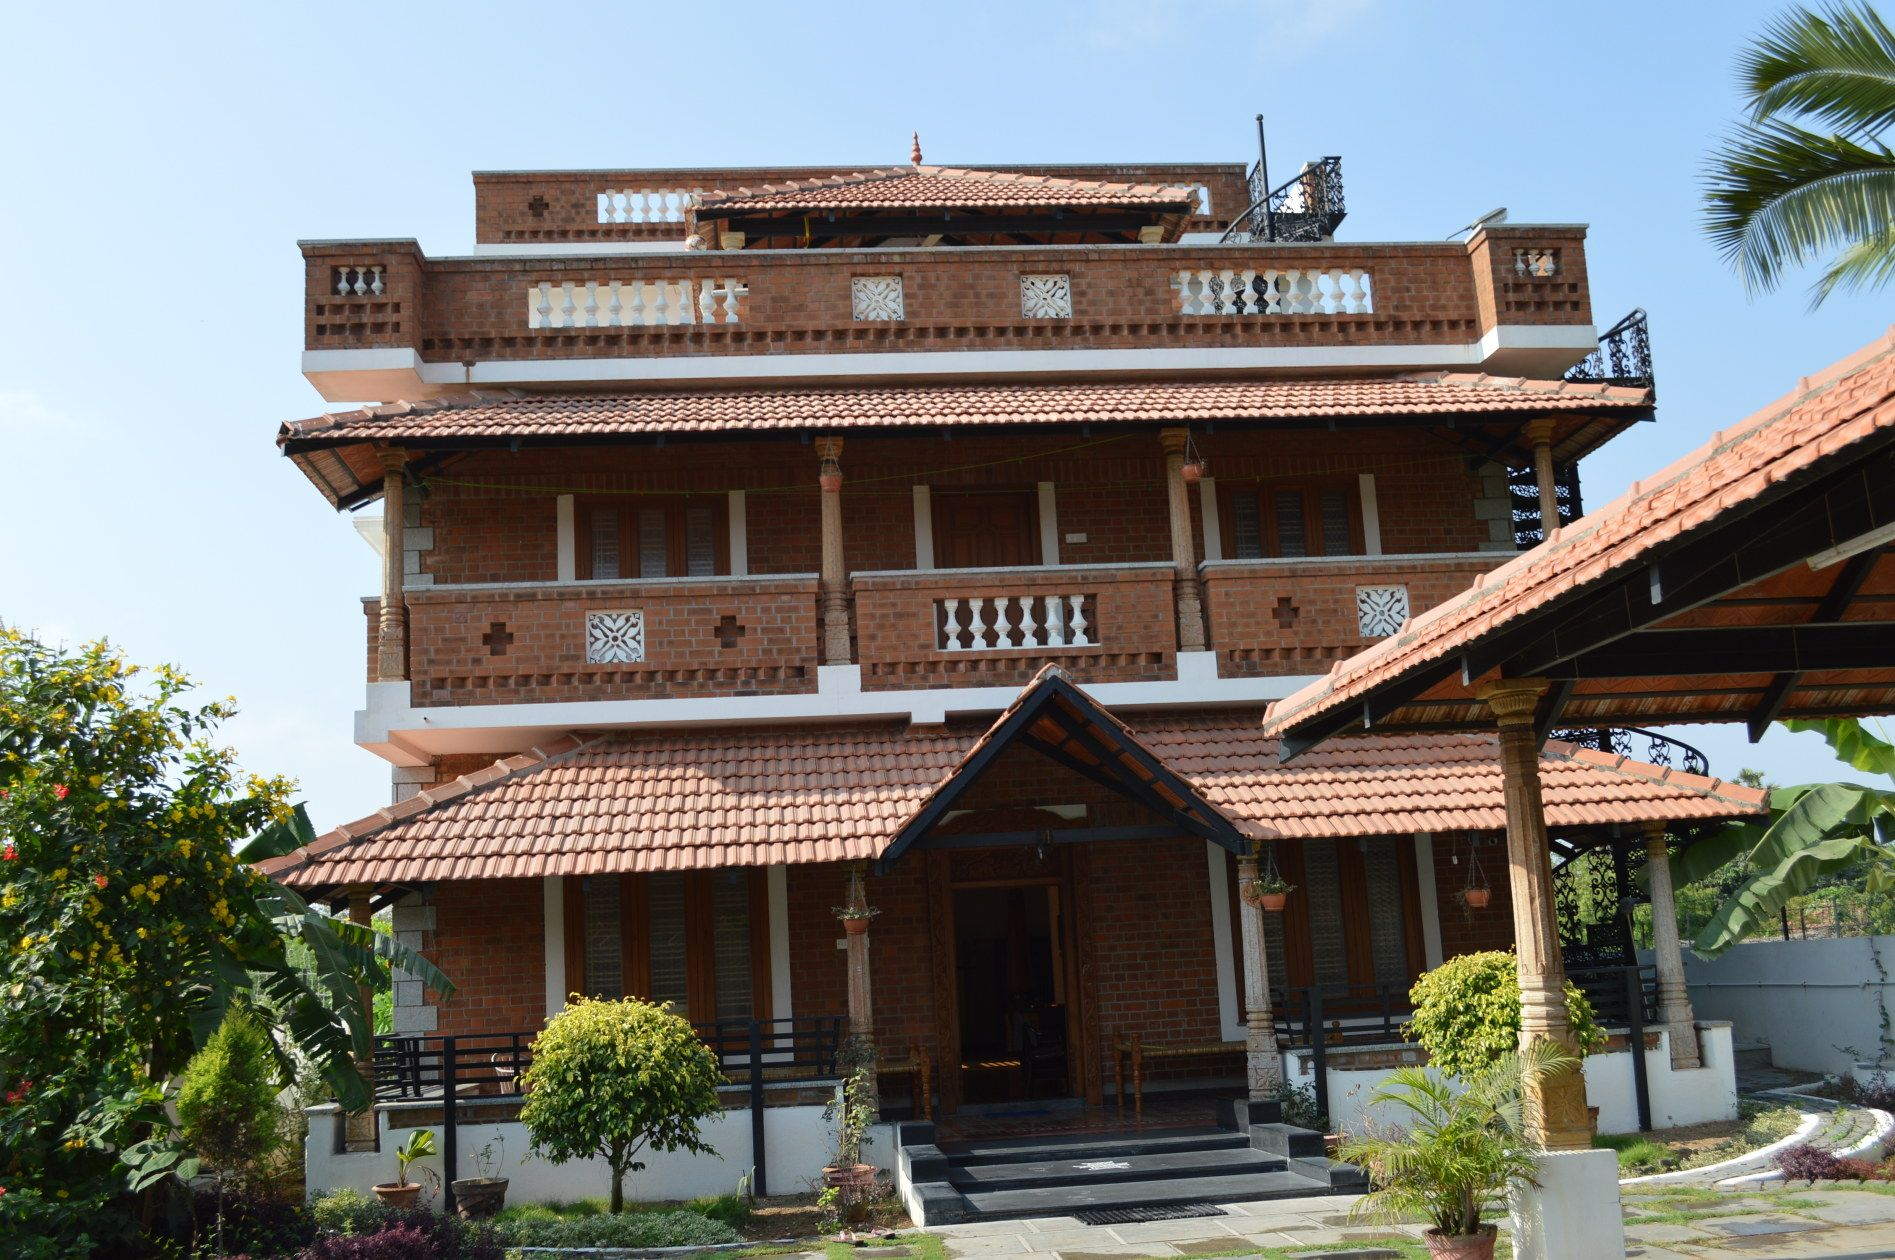 The house is Fully Furnished and has 7 bedrooms (7 BHK) 7